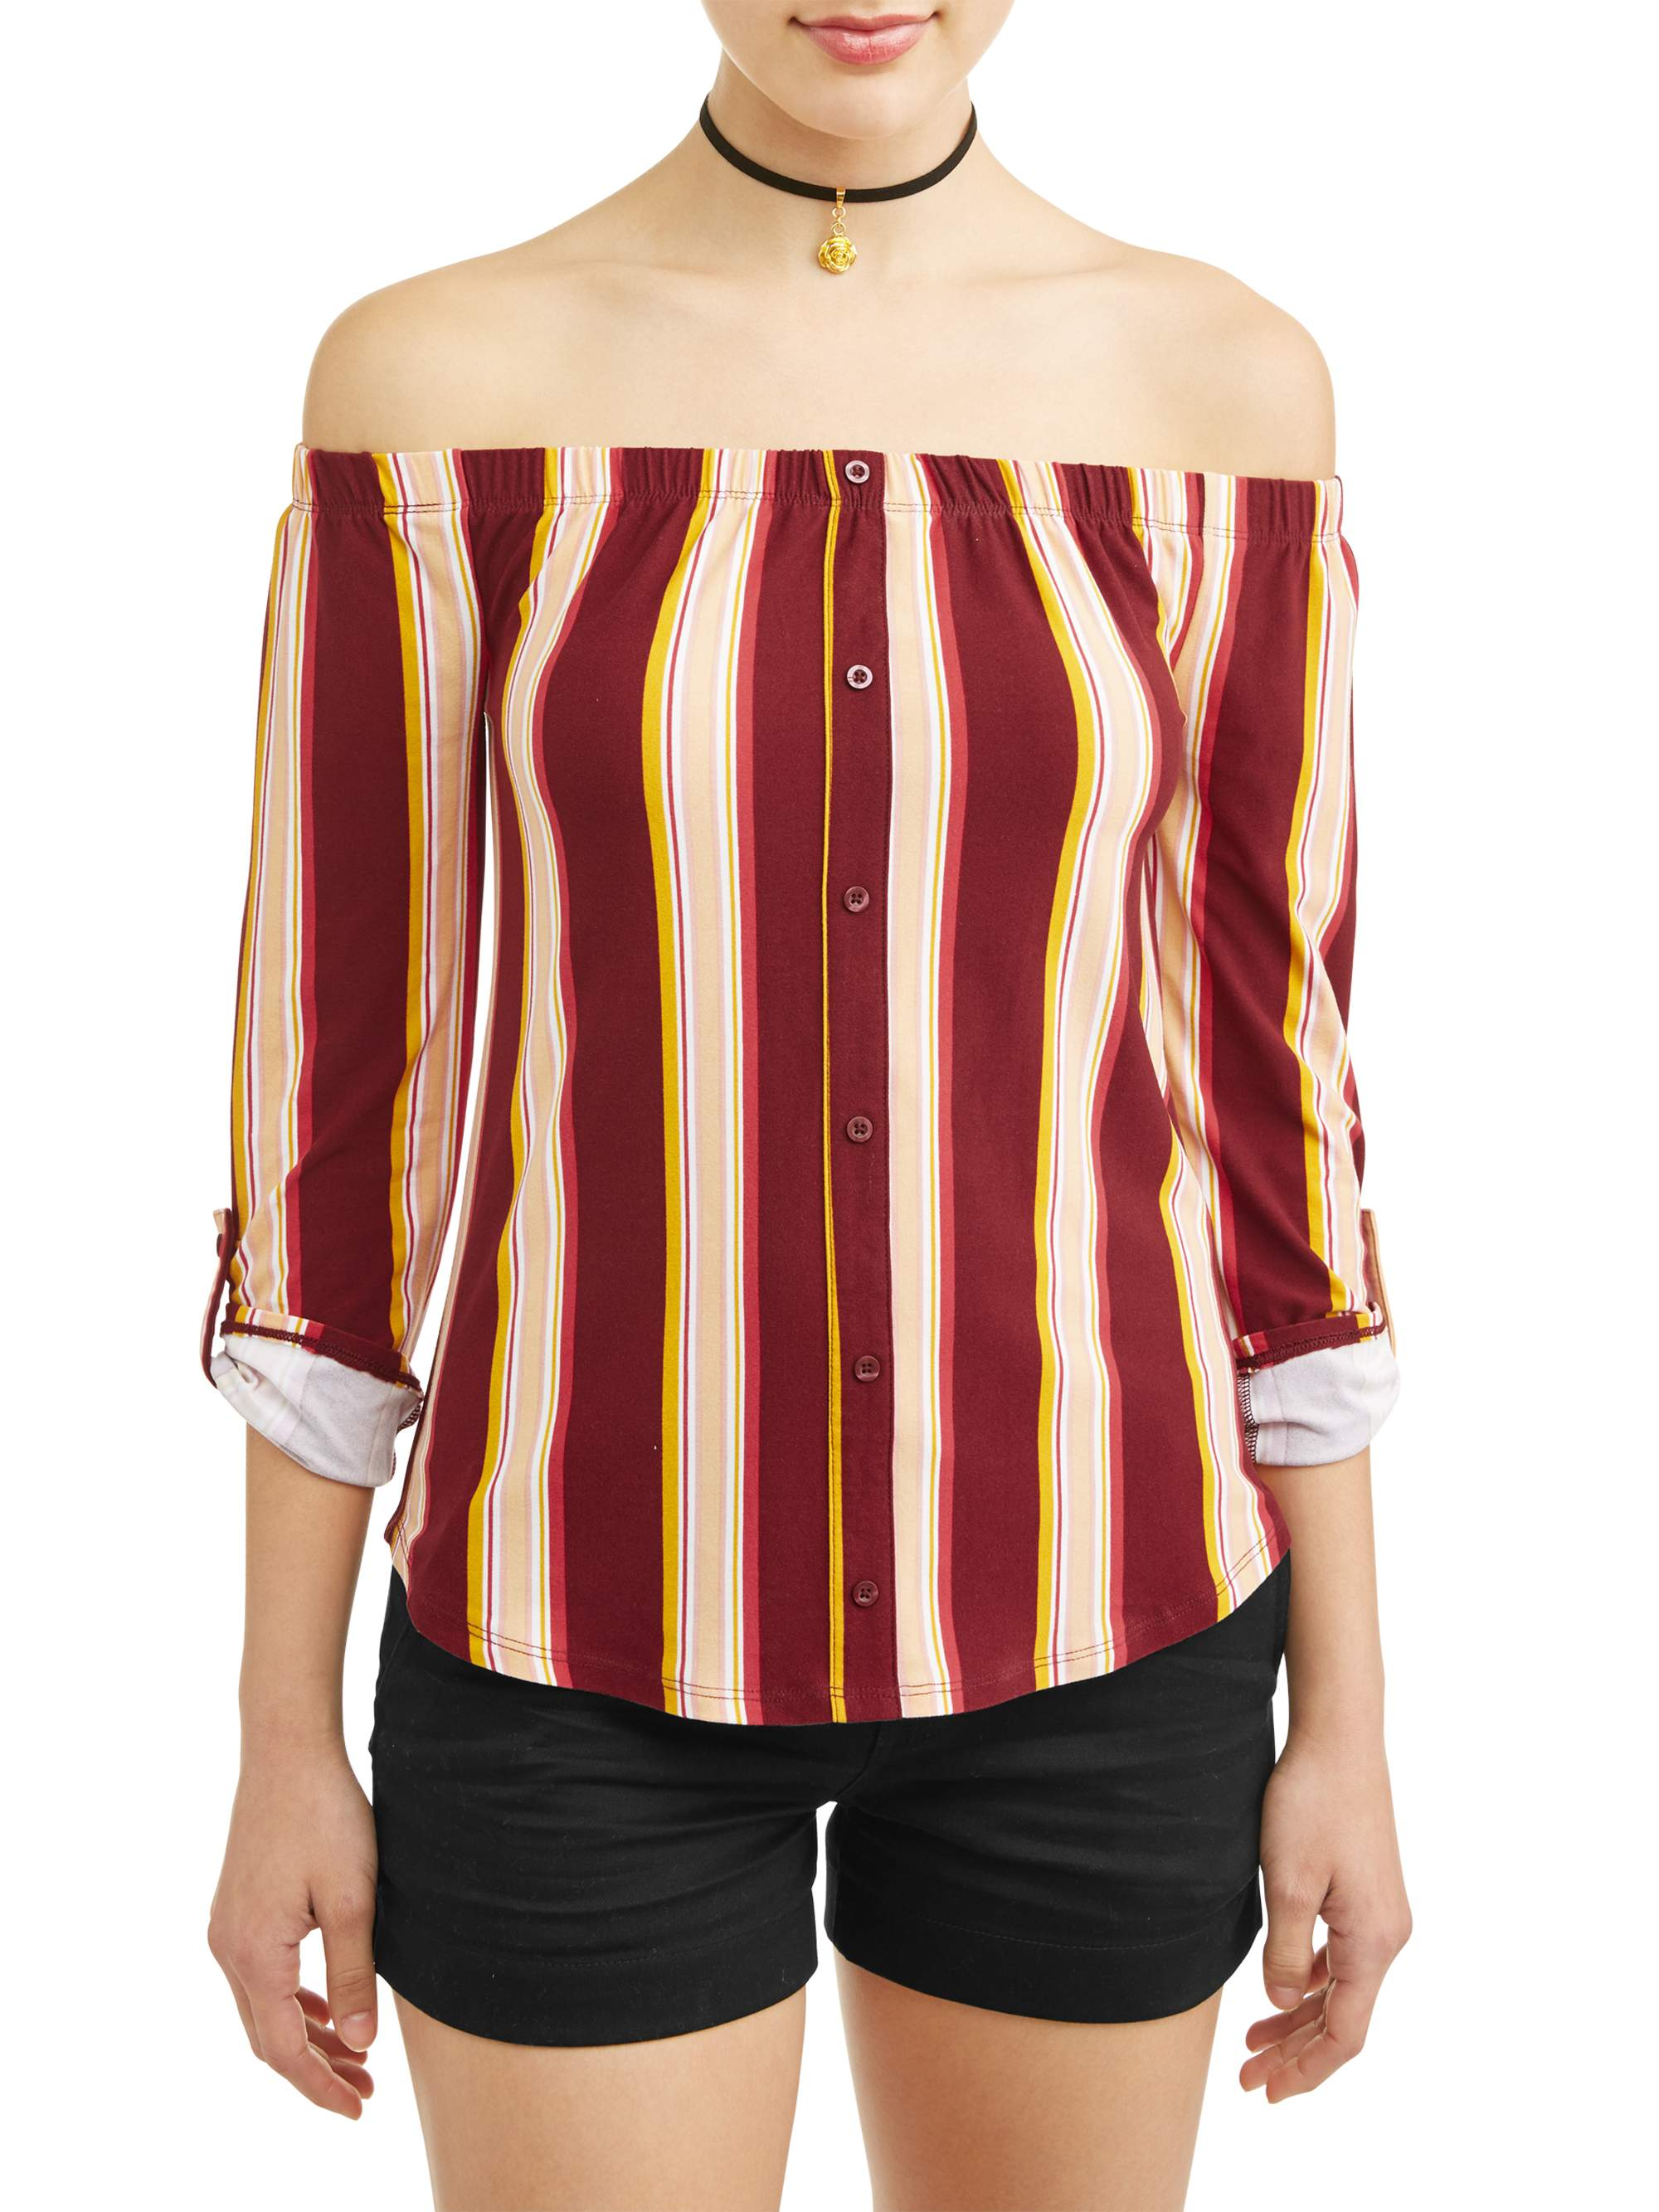 Juniors' Printed Off the Shoulder Blouse with Necklace 2Fer